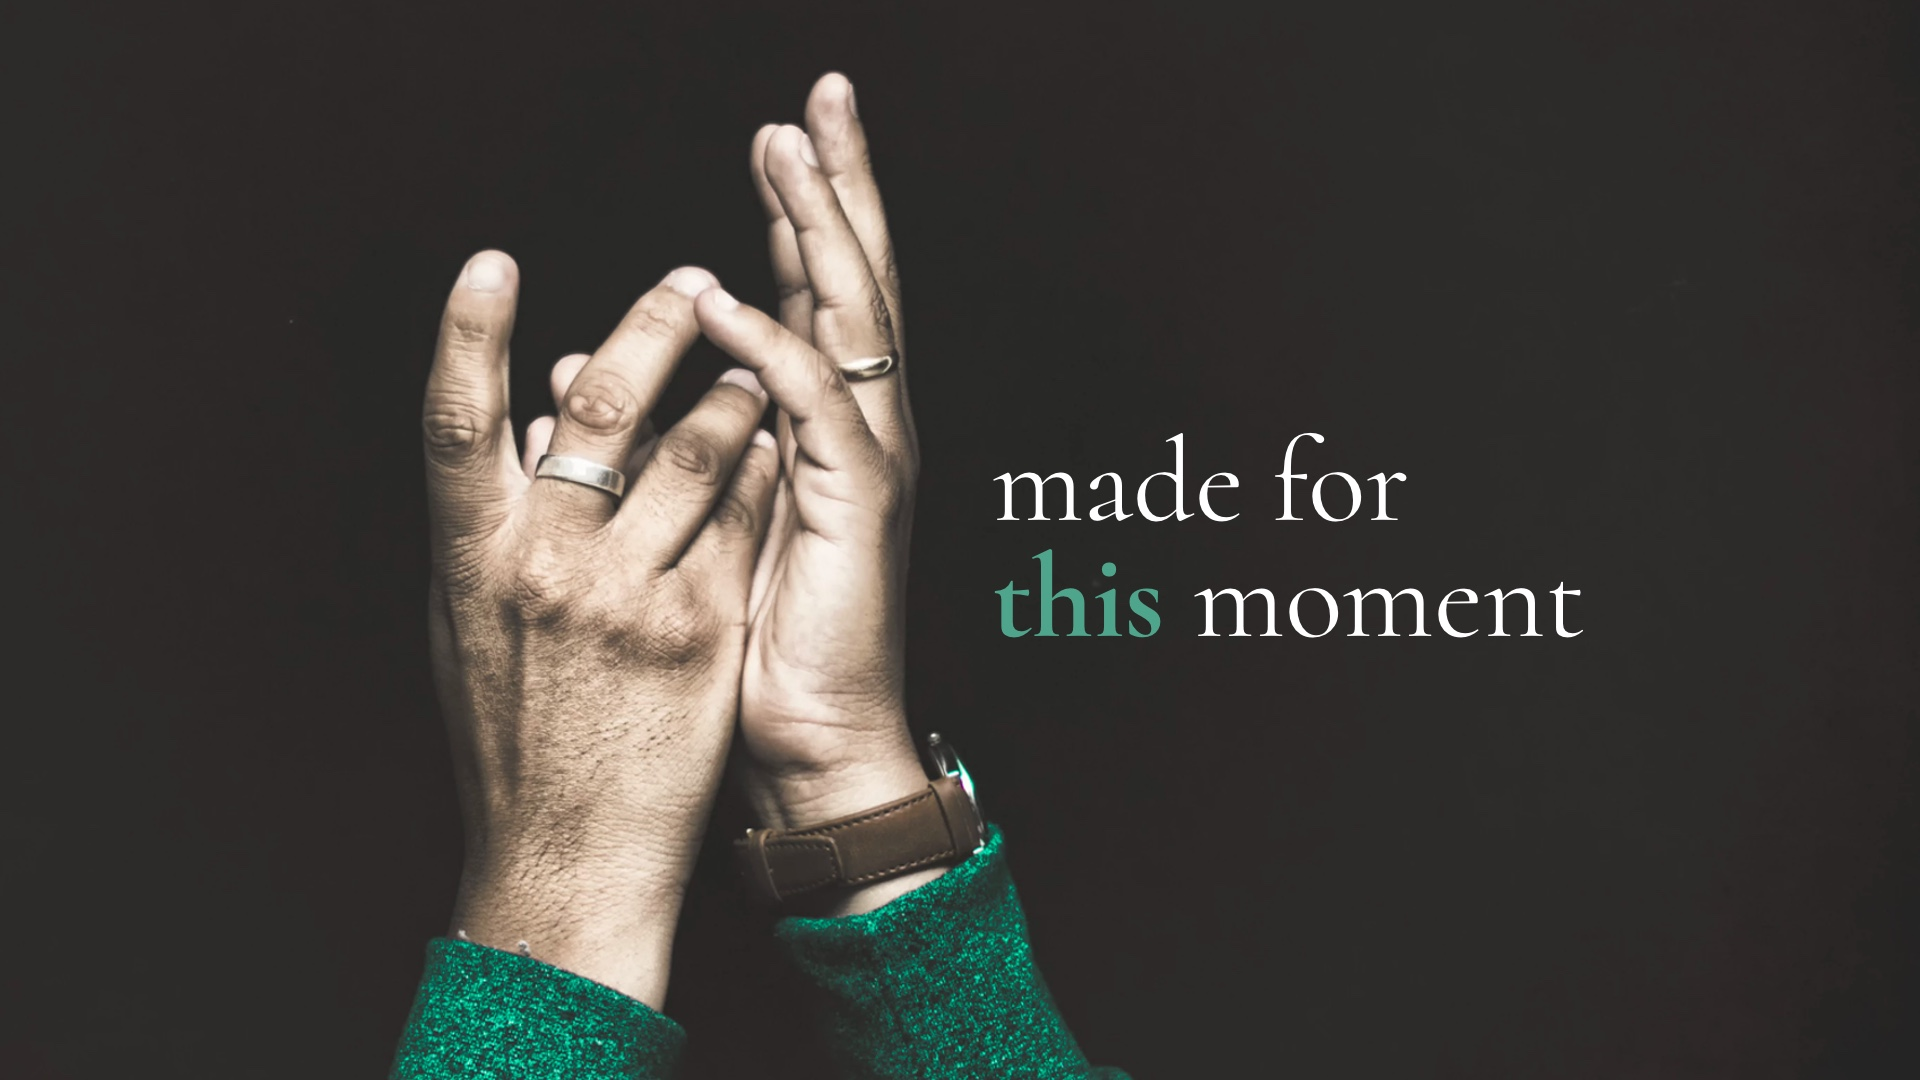 Sermon Series on Esther: Made for This Moment